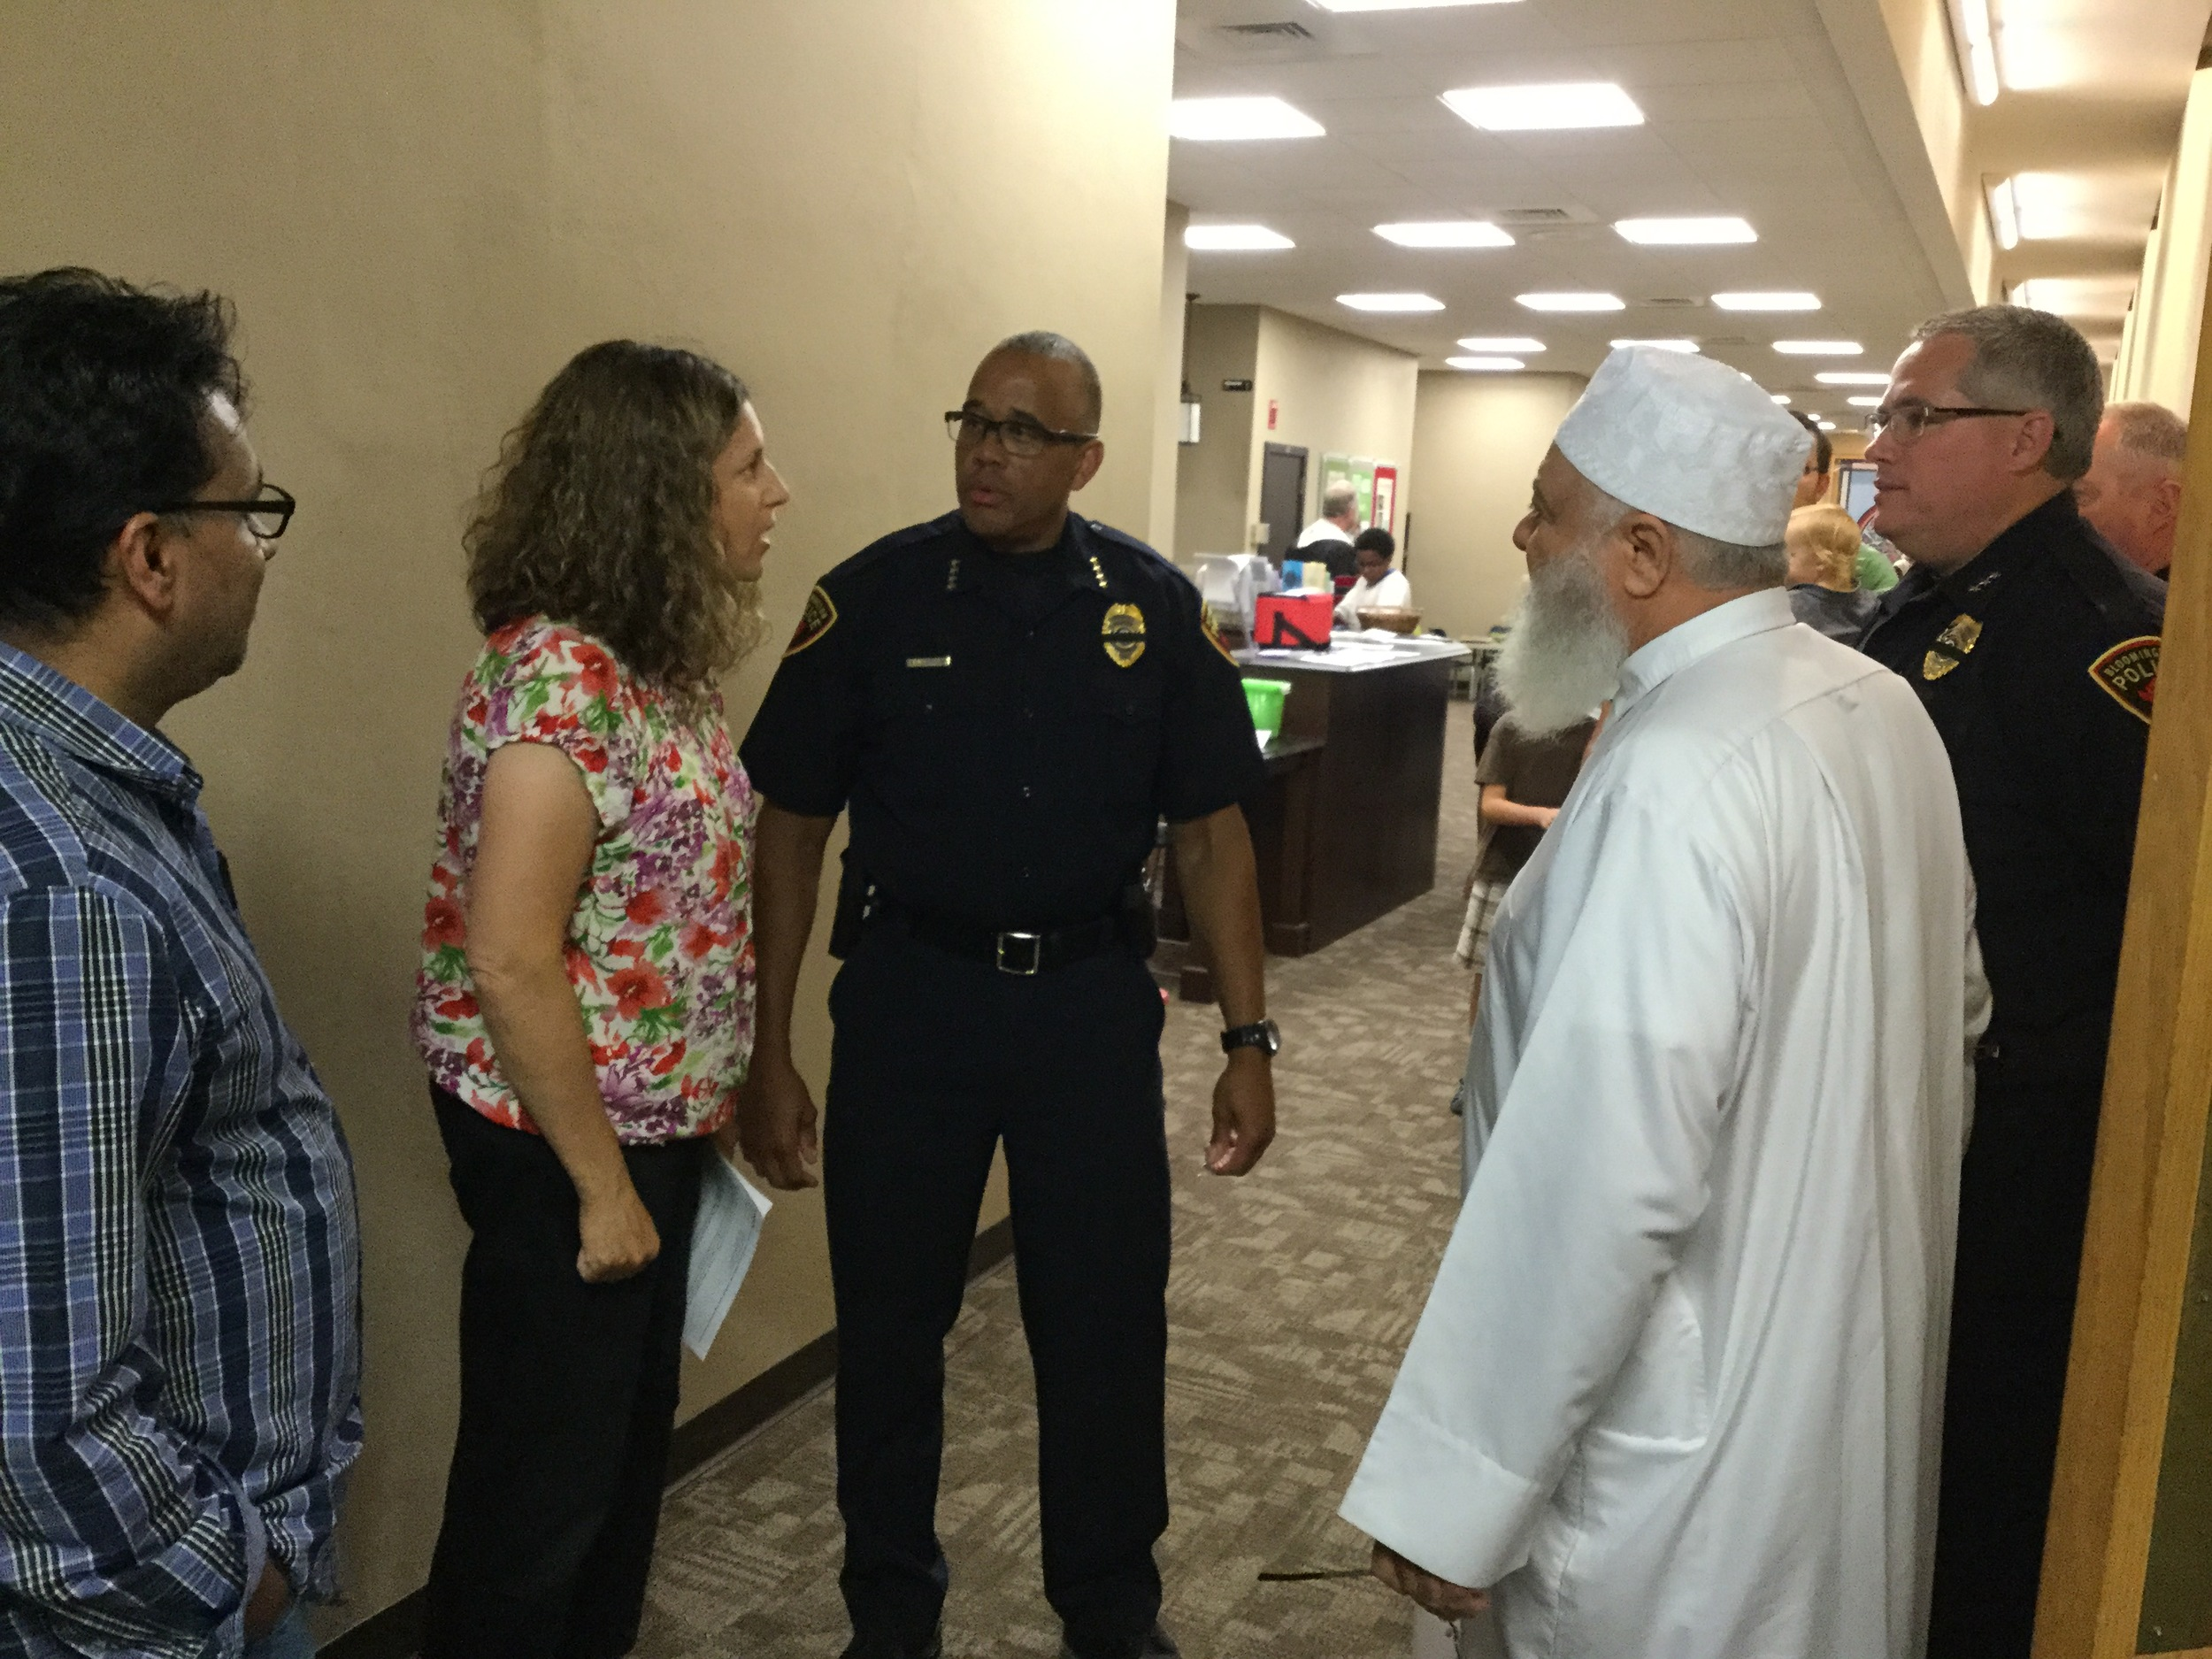 Moses Montefiore Rabbi Rebecca Dubowe and Imam Abu Emad AL-Talla chat with Bloomington Police Chief Brendan Heffner prior to the vigil.